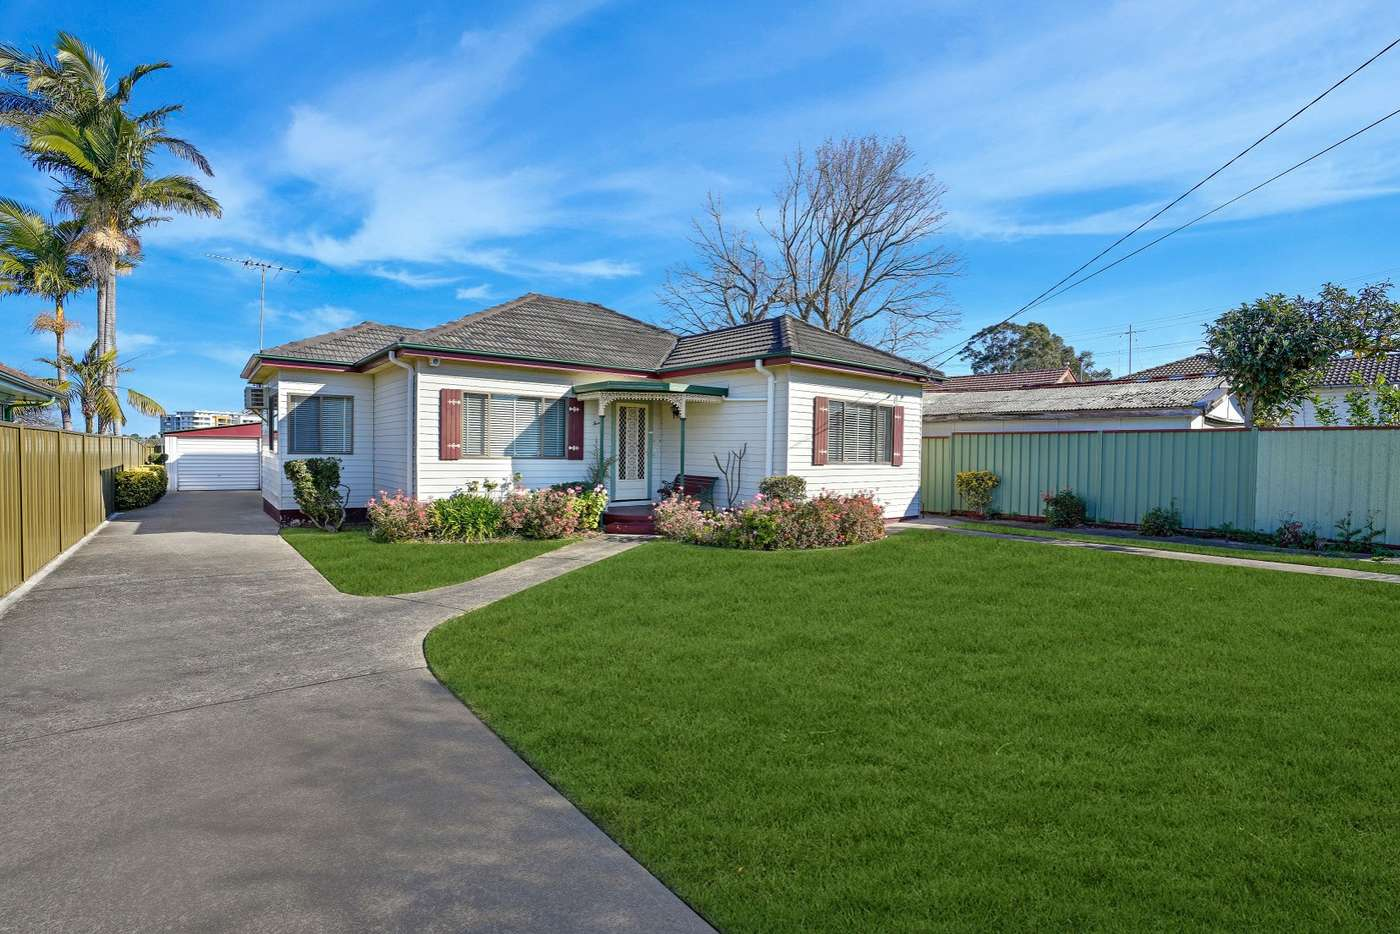 Main view of Homely house listing, 5 Tennyson Street, Parramatta, NSW 2150